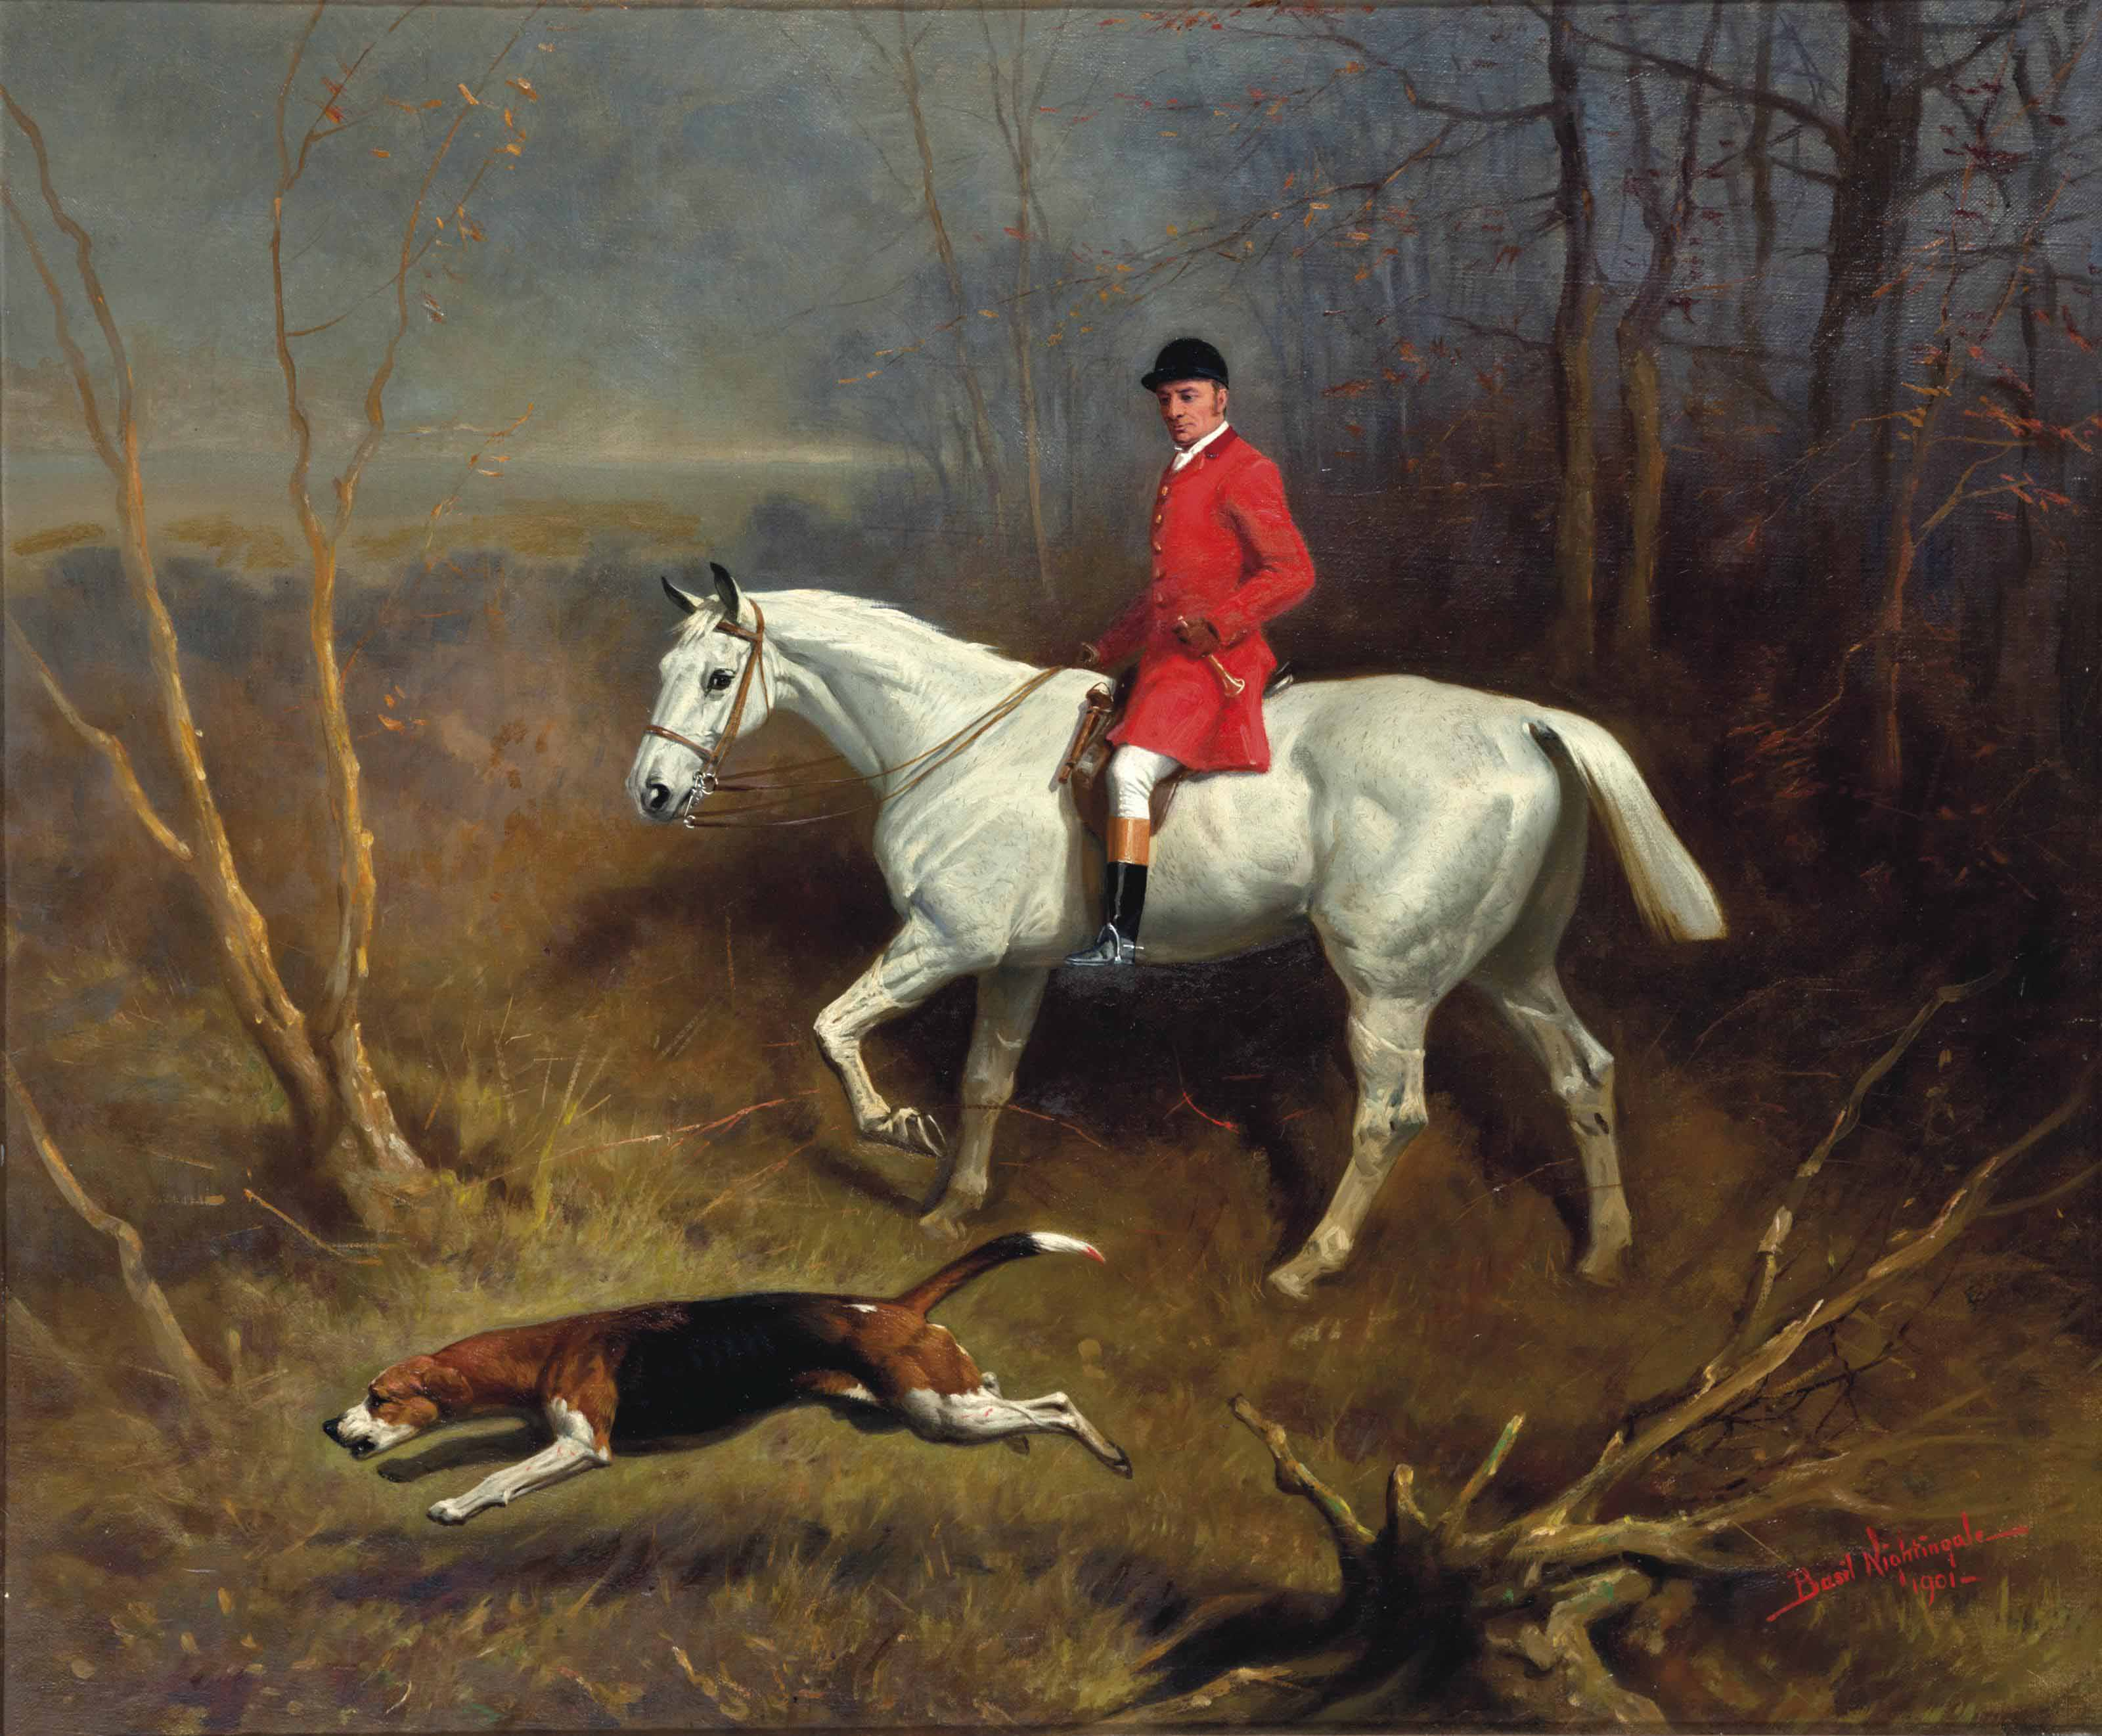 Gillard, Grey Bolt, A Huntsman on a Grey Horse, Riding through a Wood with a Hound on the Scent